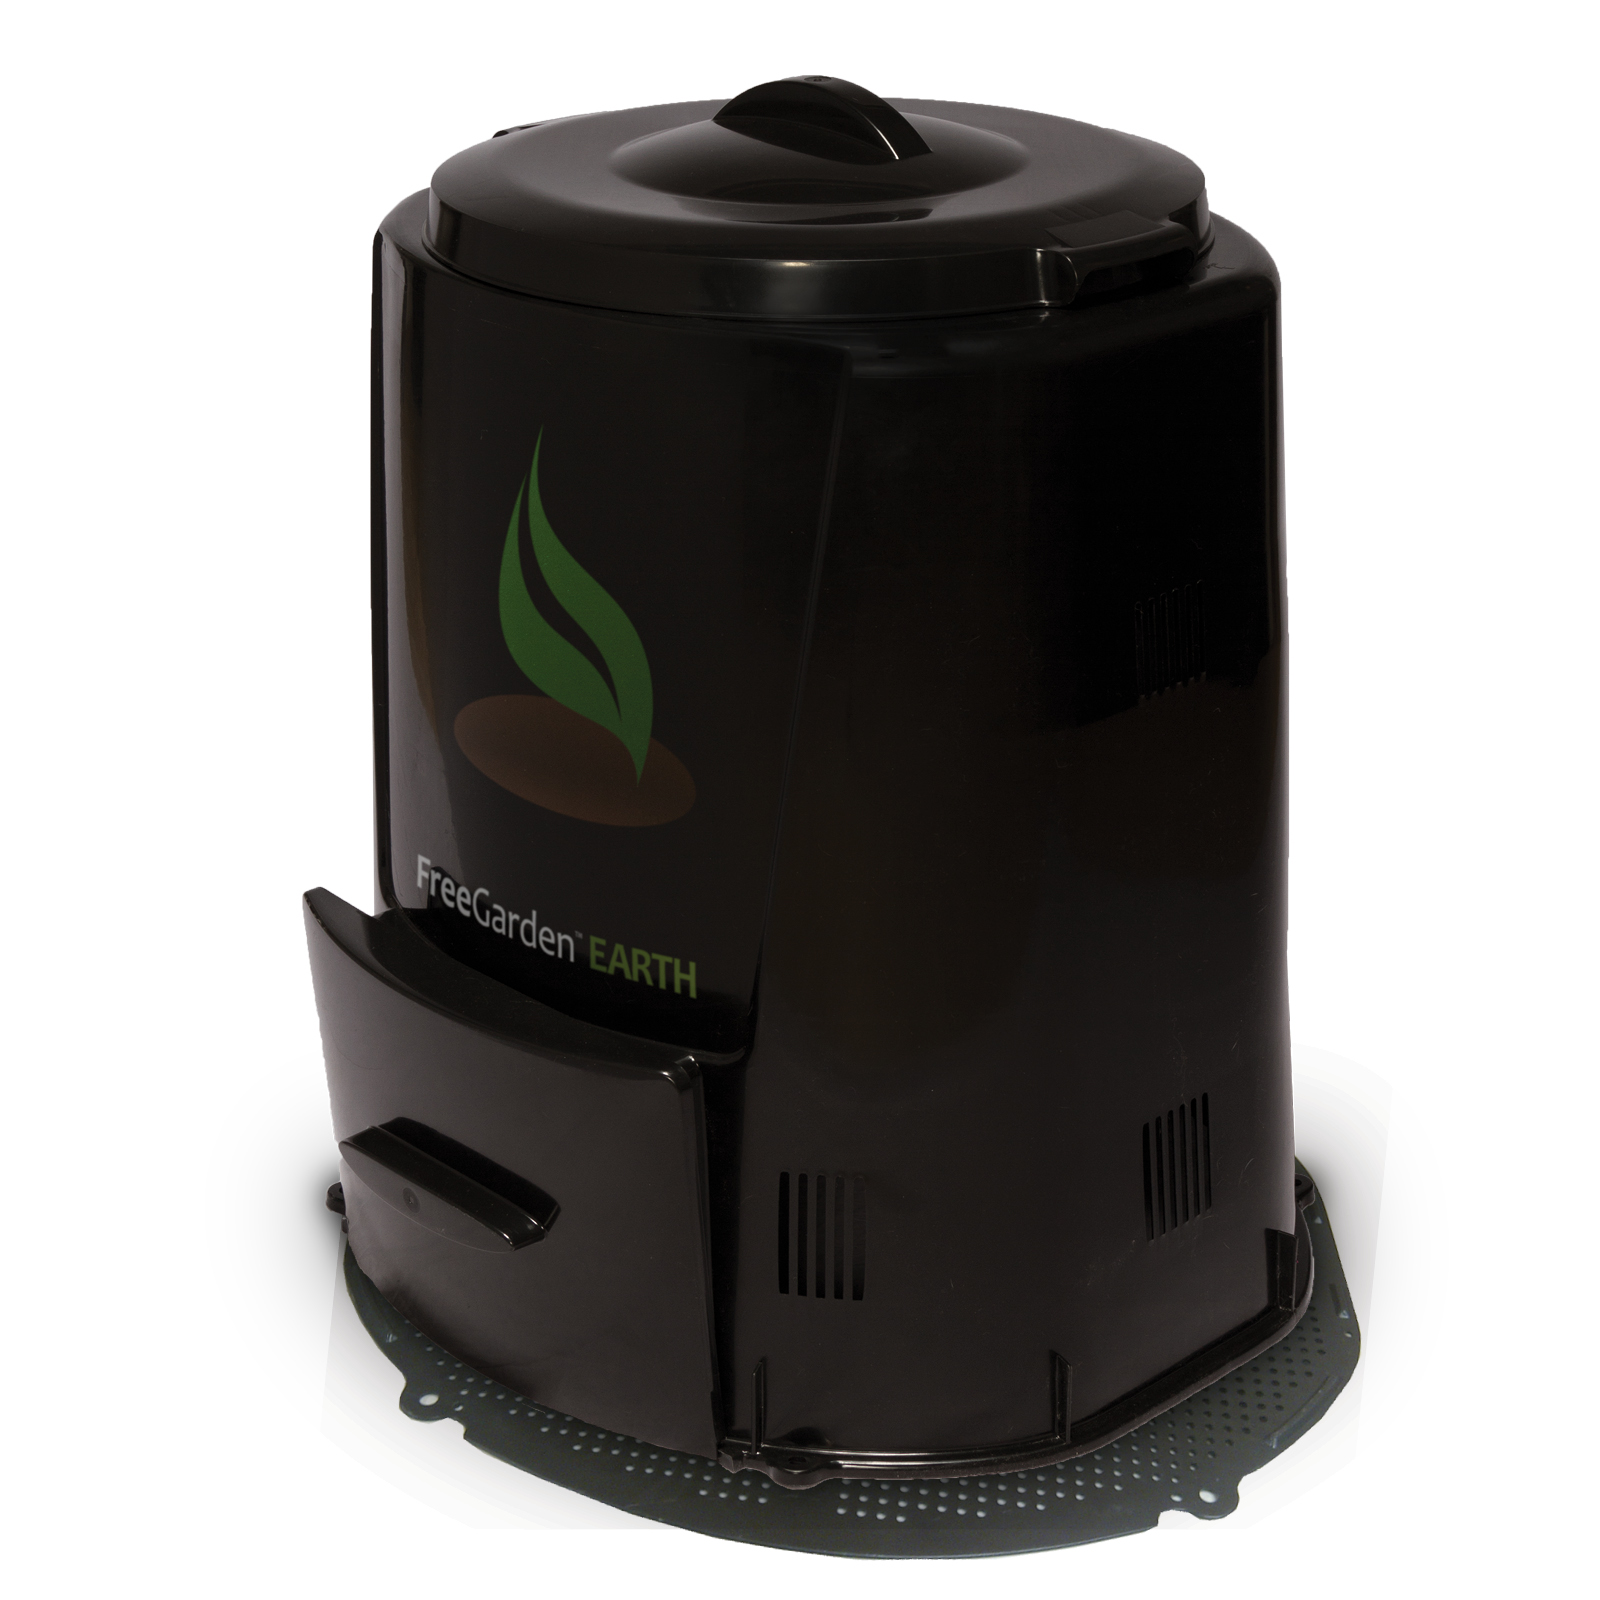 82 gal. Compost Bin with Base by Enviro world Corp